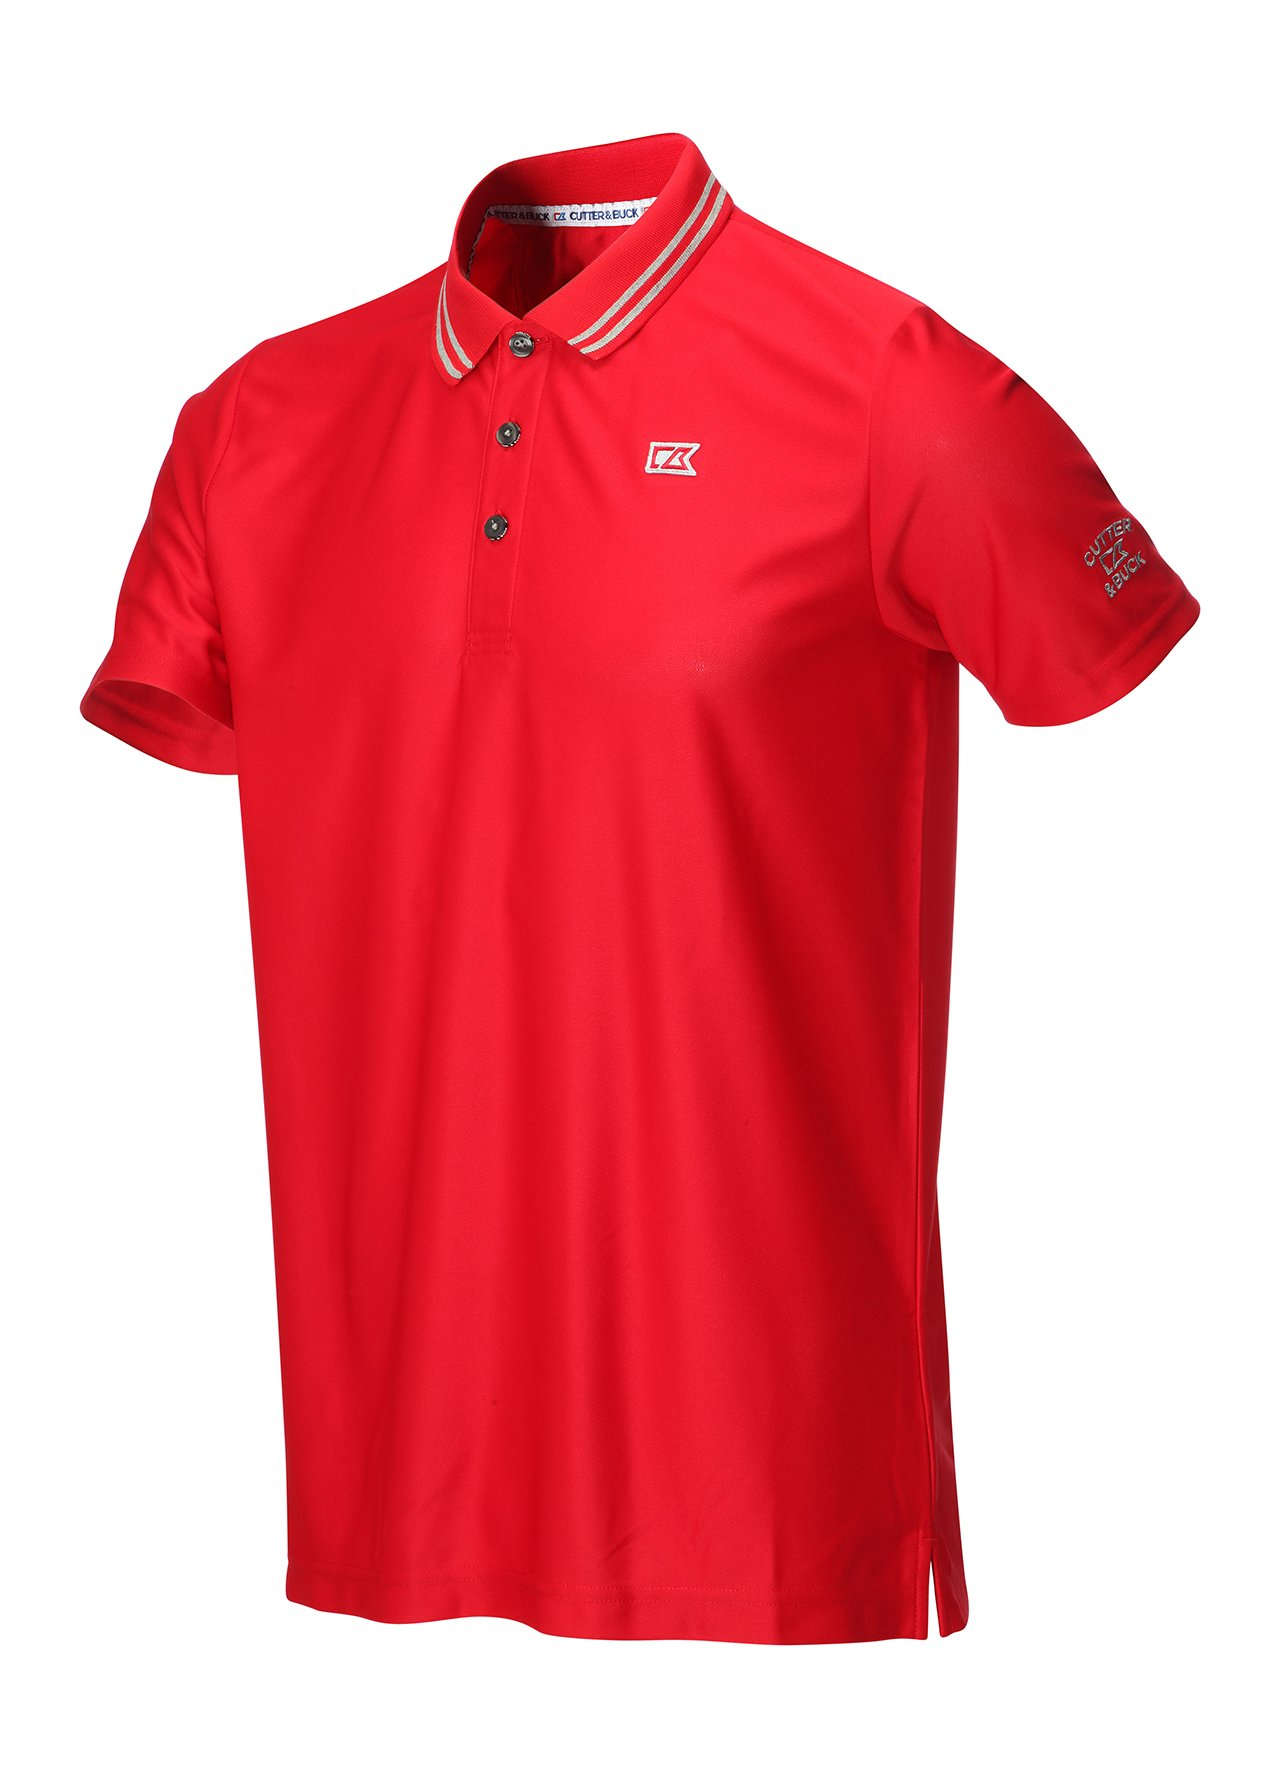 Cutter buck tipped collar dry tec polo shirt red small for Cutter buck polo shirt size chart